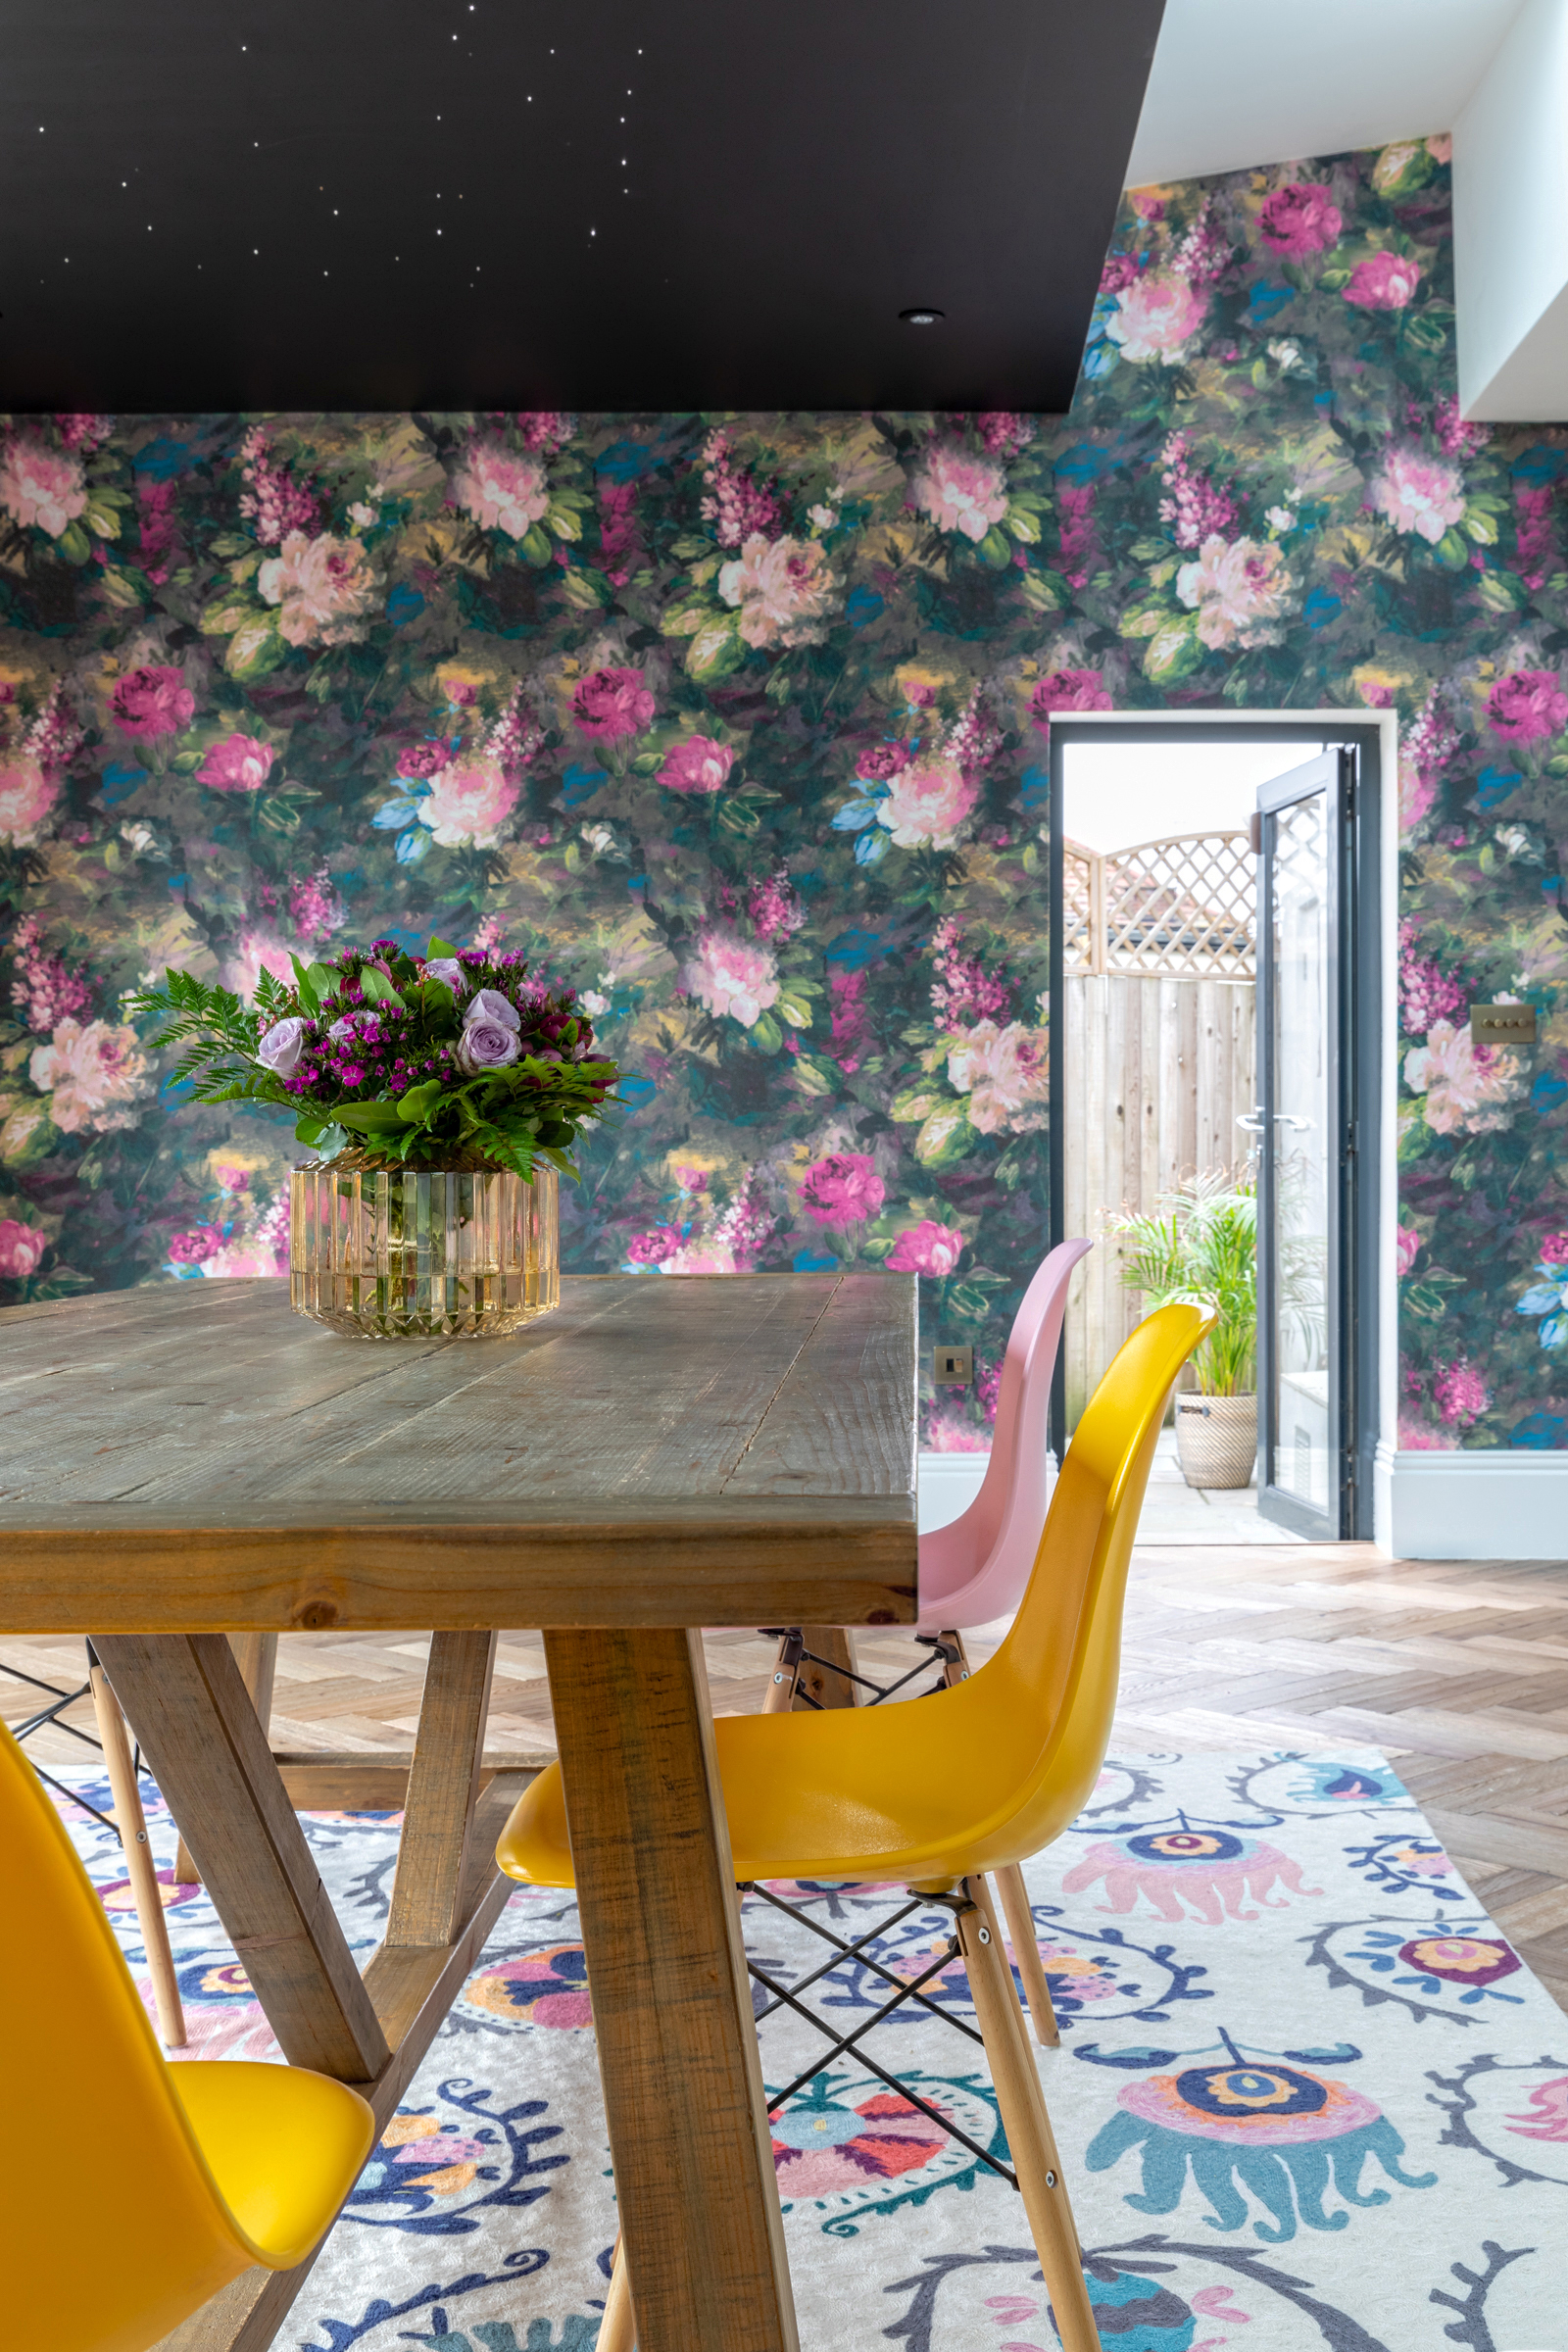 Woodchip & Magnolia's floral wallpaper transformed the previously sterile white kitchen. Image credit - Anna Yanovski